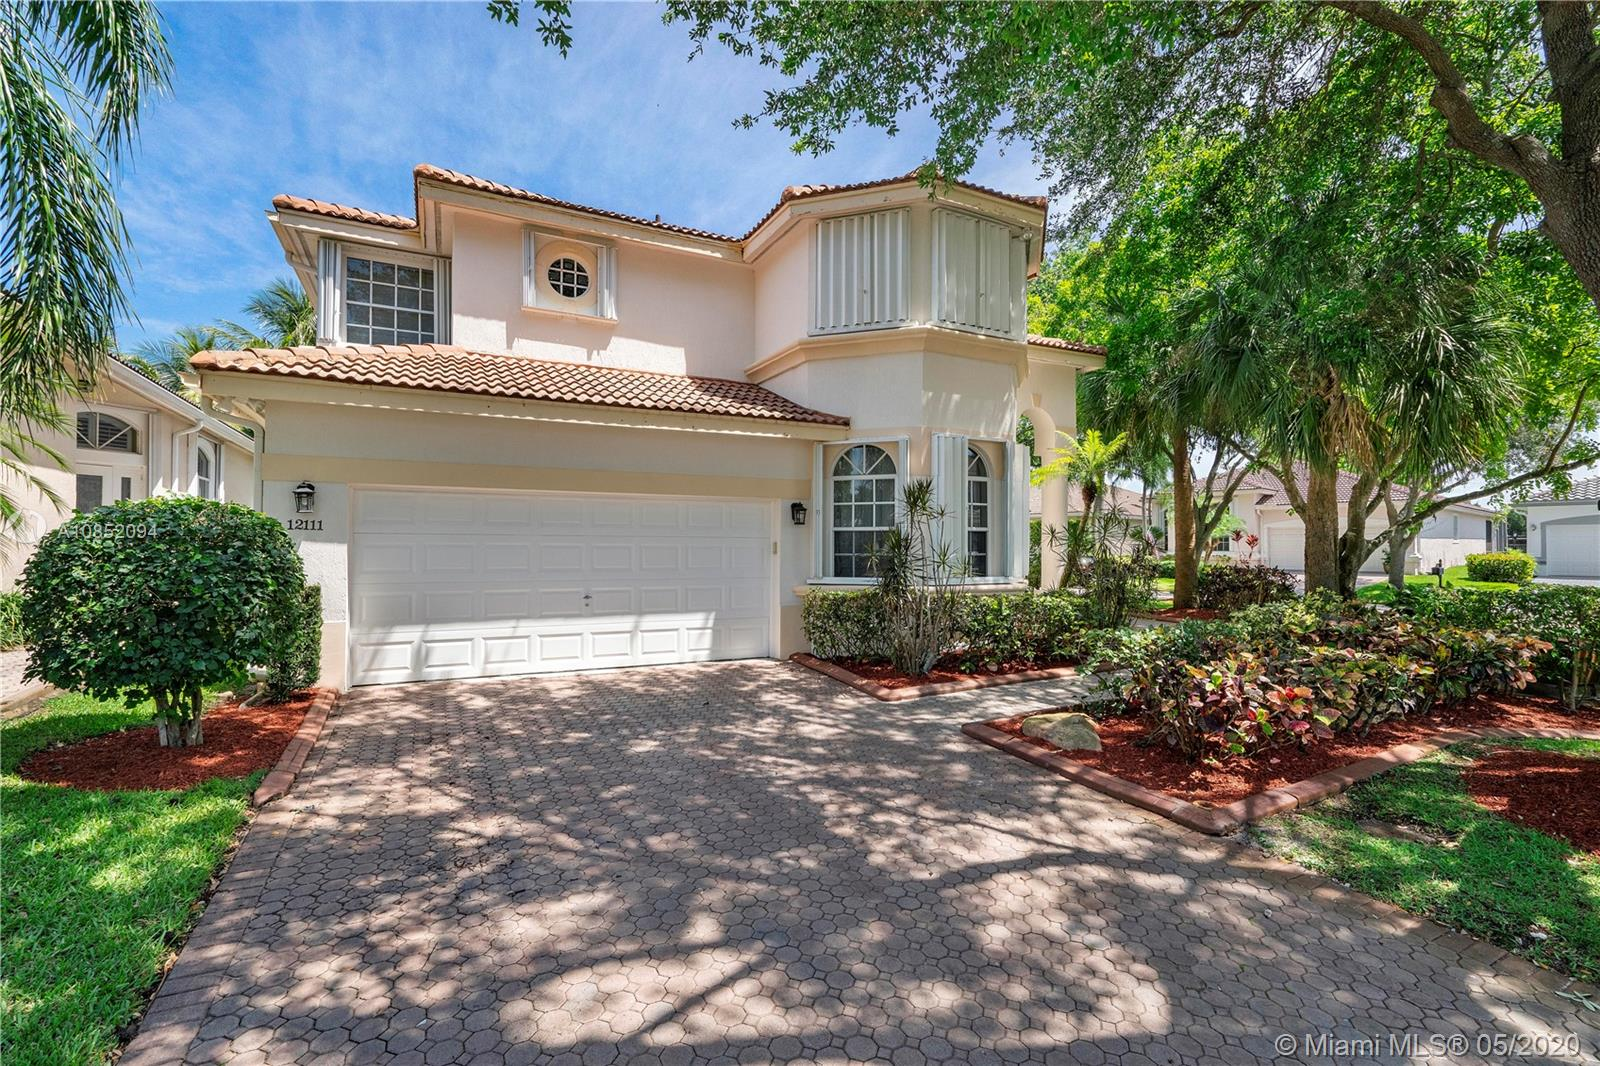 12111 NW 15th Ct, Coral Springs, FL 33071